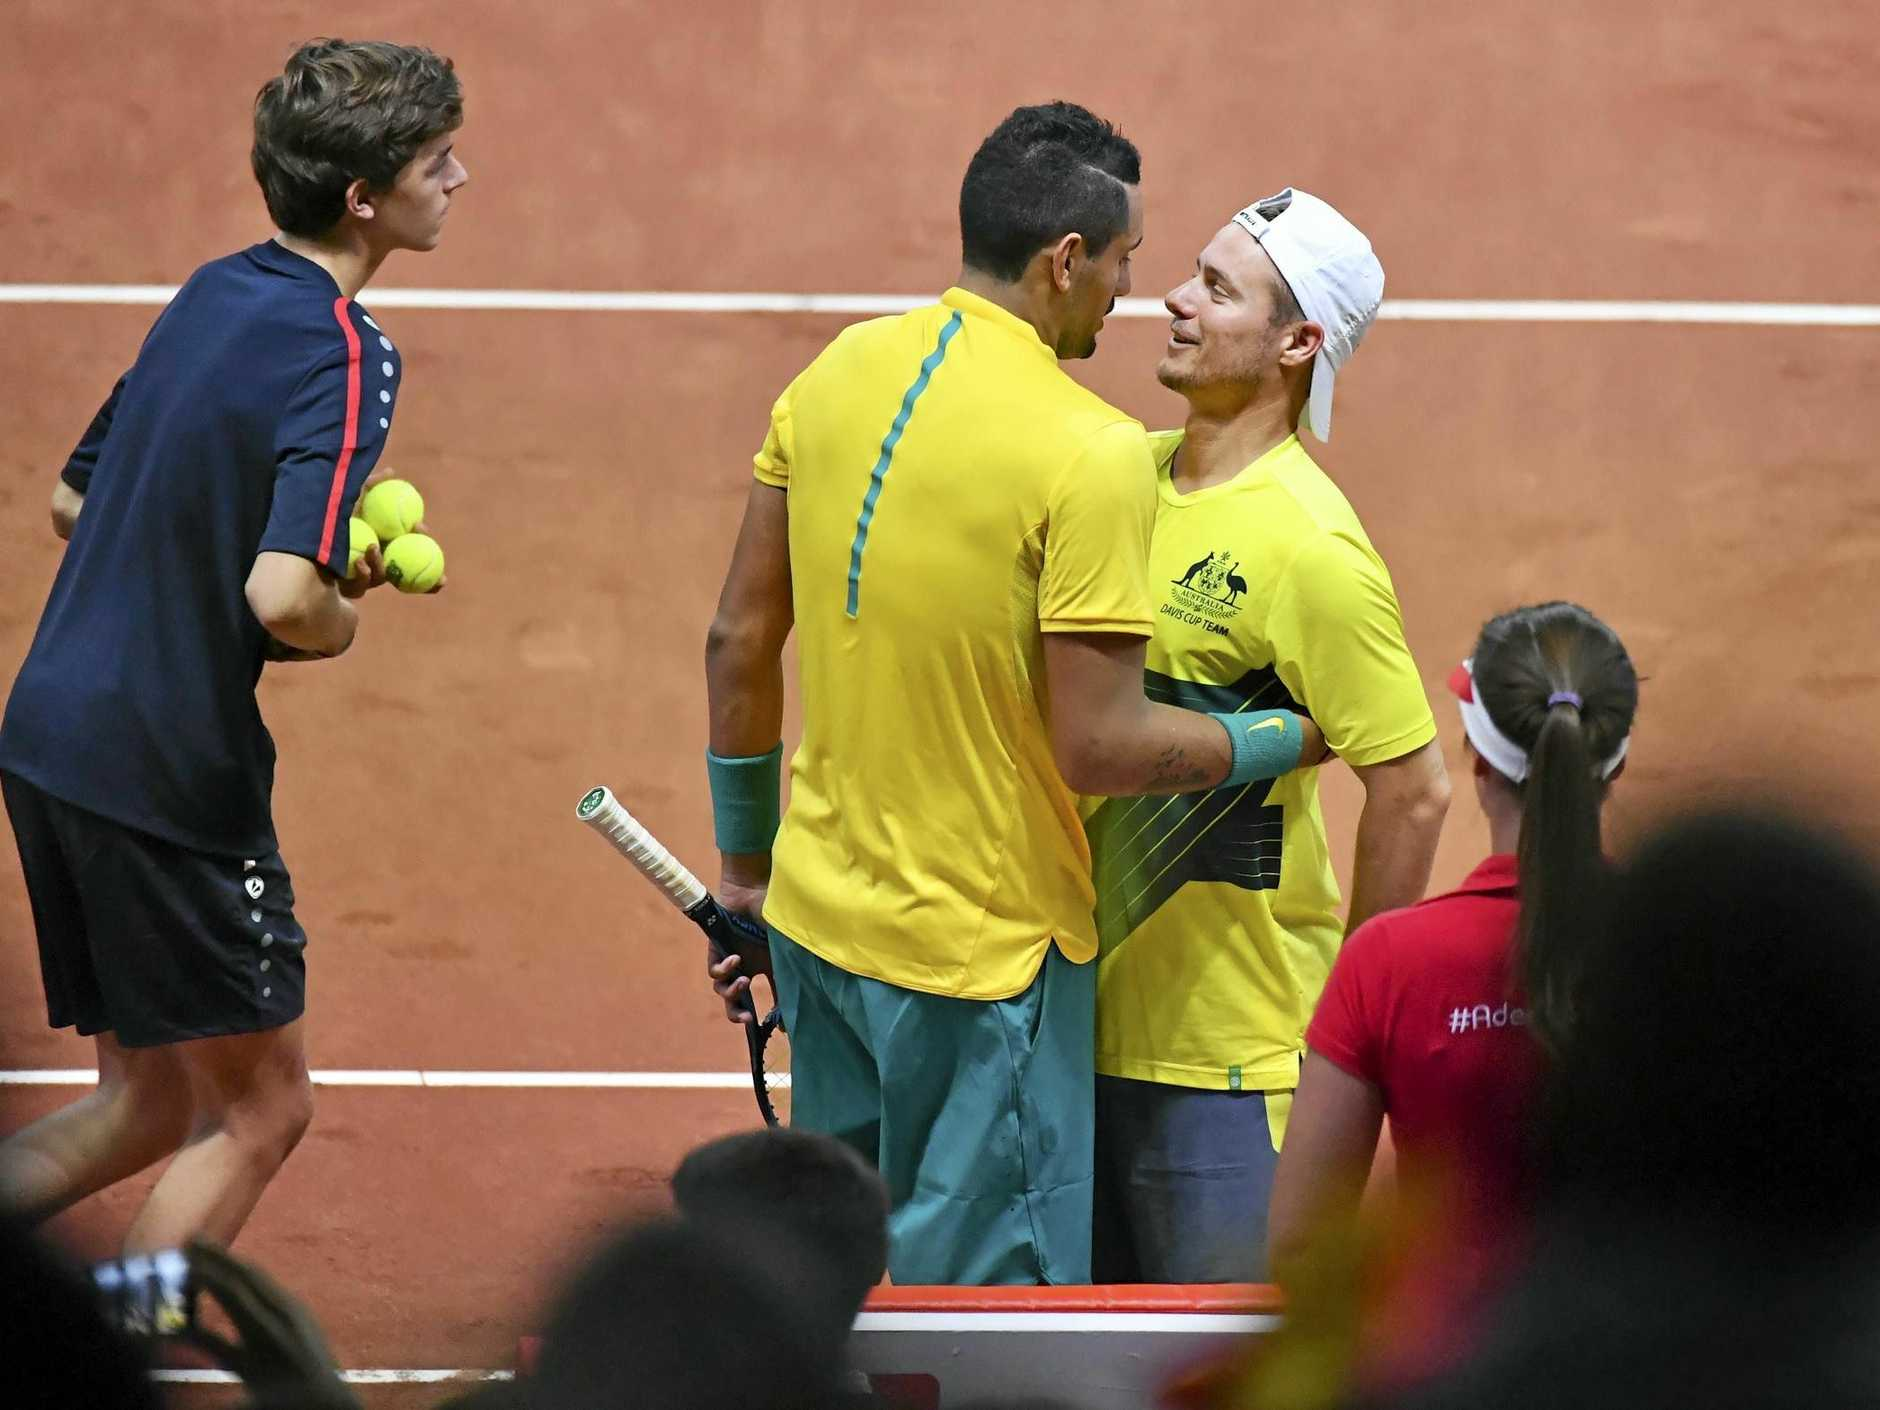 Australia's Nick Kyrgios (left) is congratulated by his team captain Lleyton Hewitt after beating Steve Darcis.